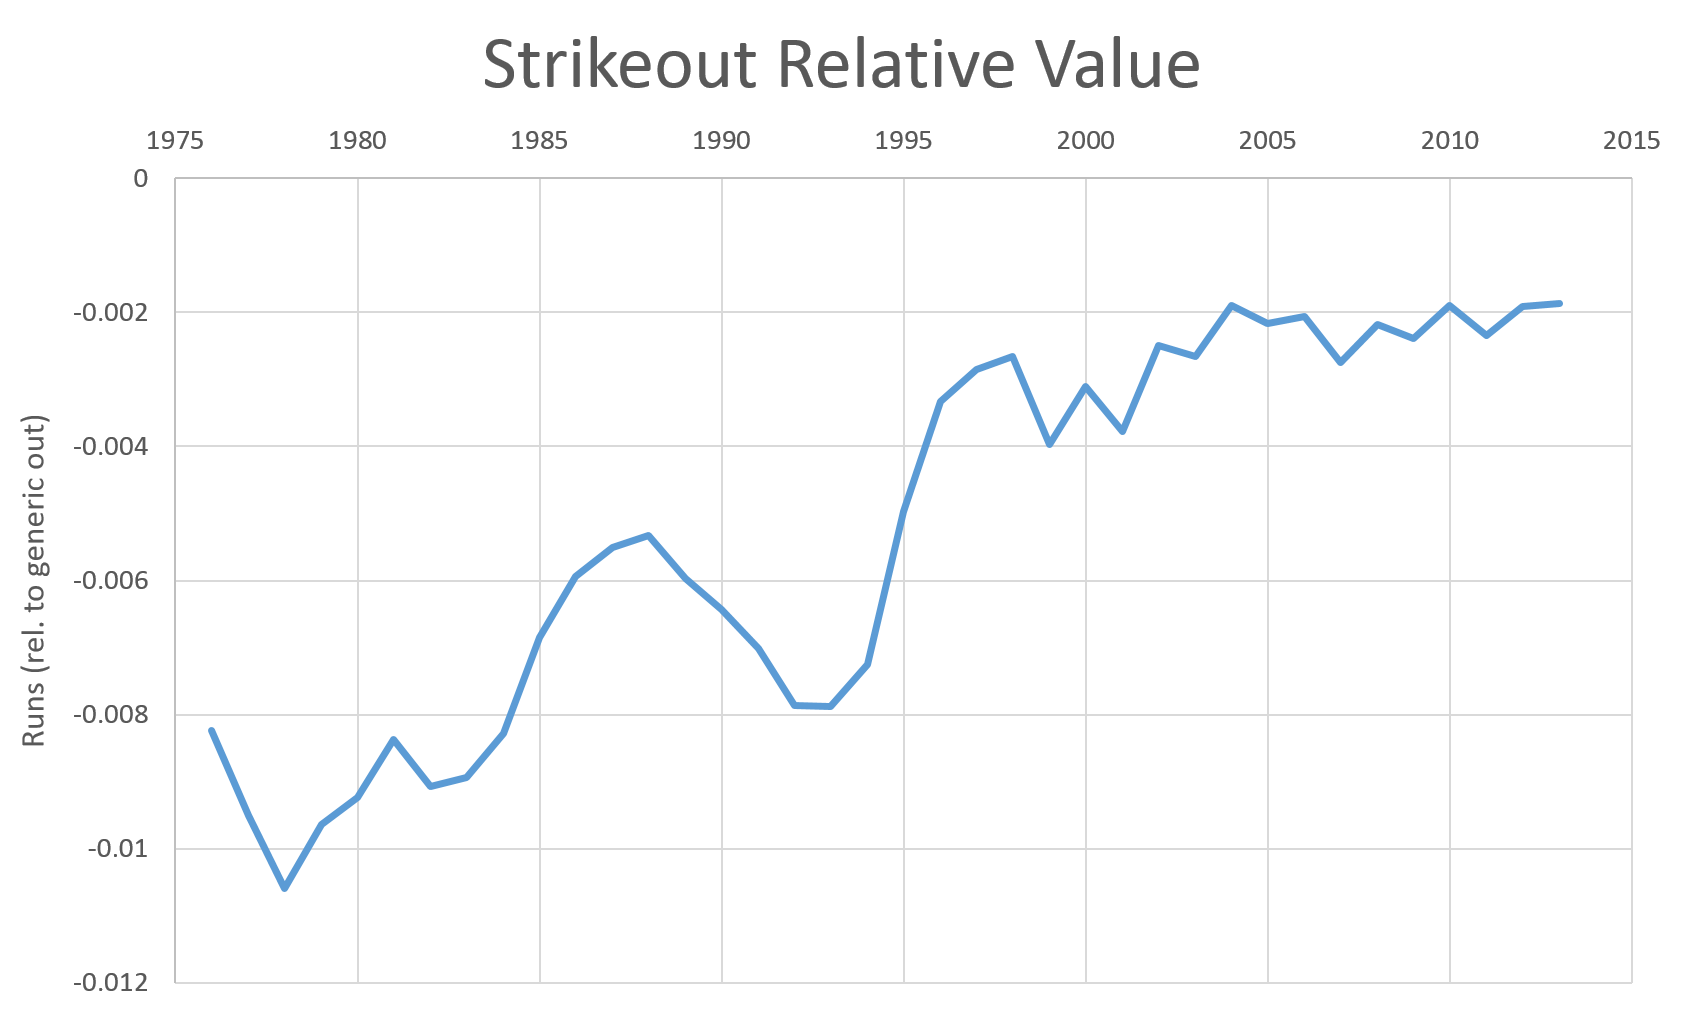 Strikeout_relative_value